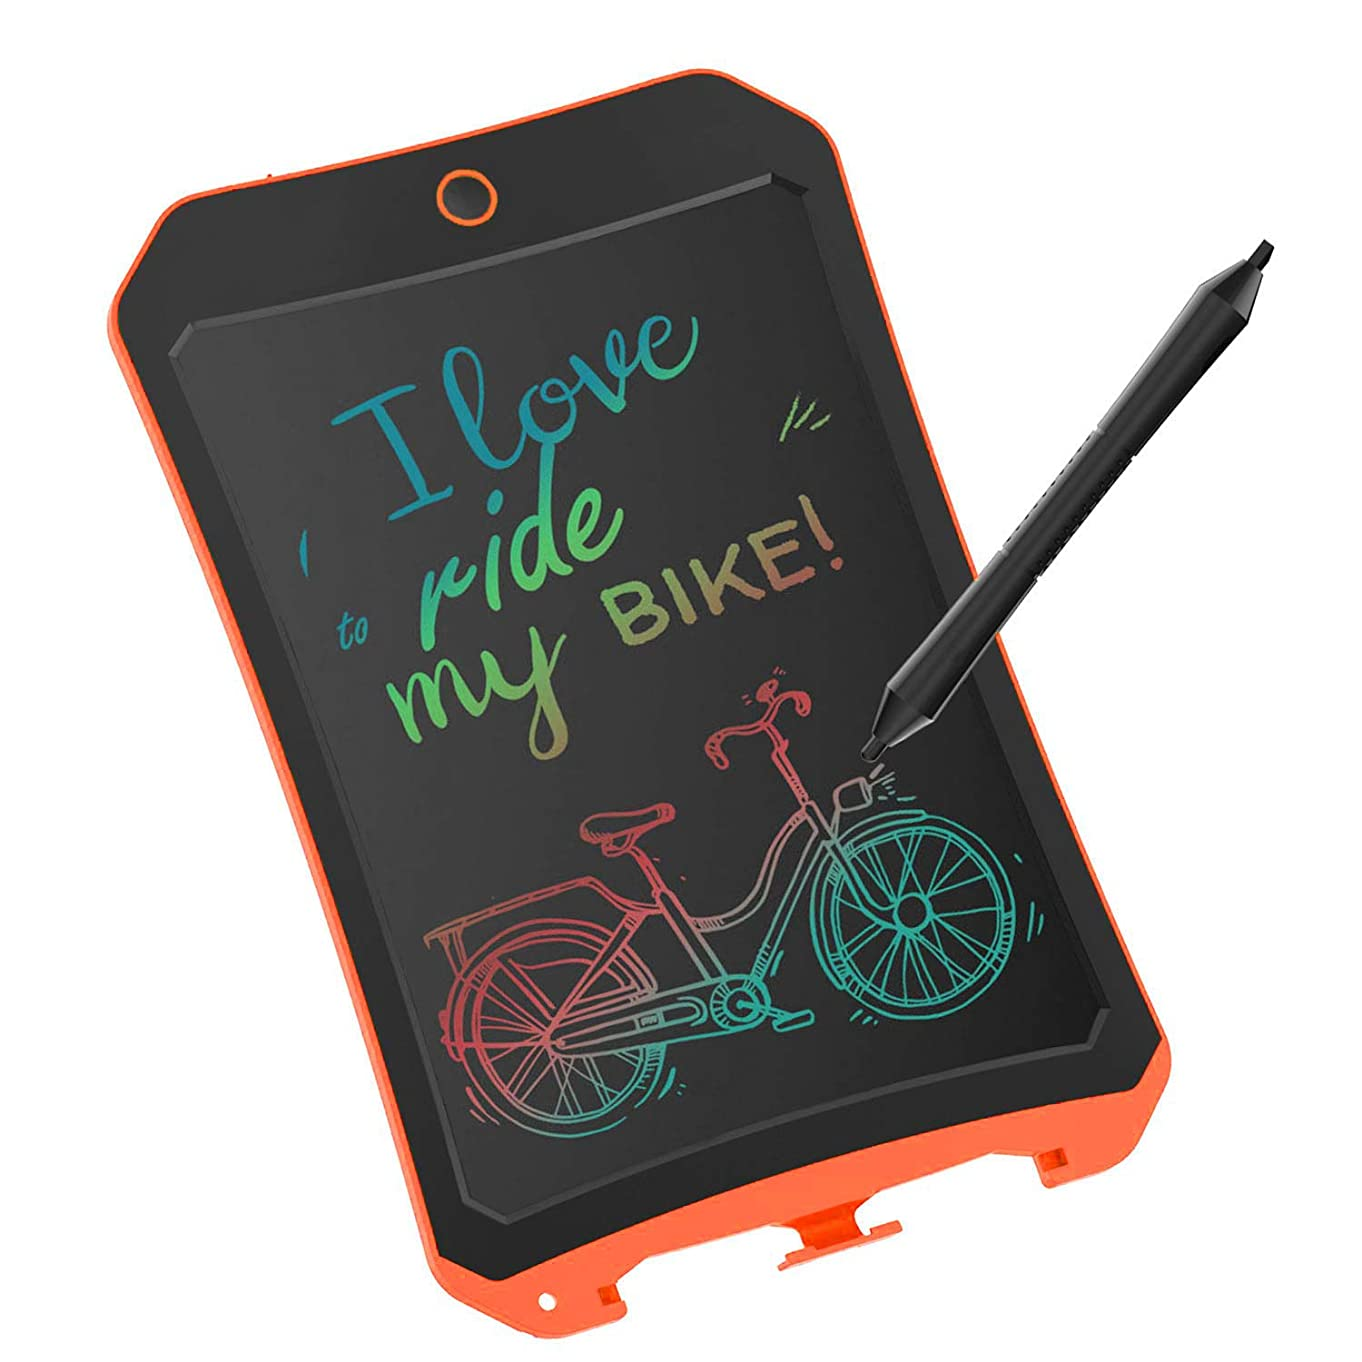 XIYITOY Colorful LCD Electronic Writing Tablet Toys for 4-9Year Old Boys, Teen Boy Girl Birthday Presents Gifts,8.5